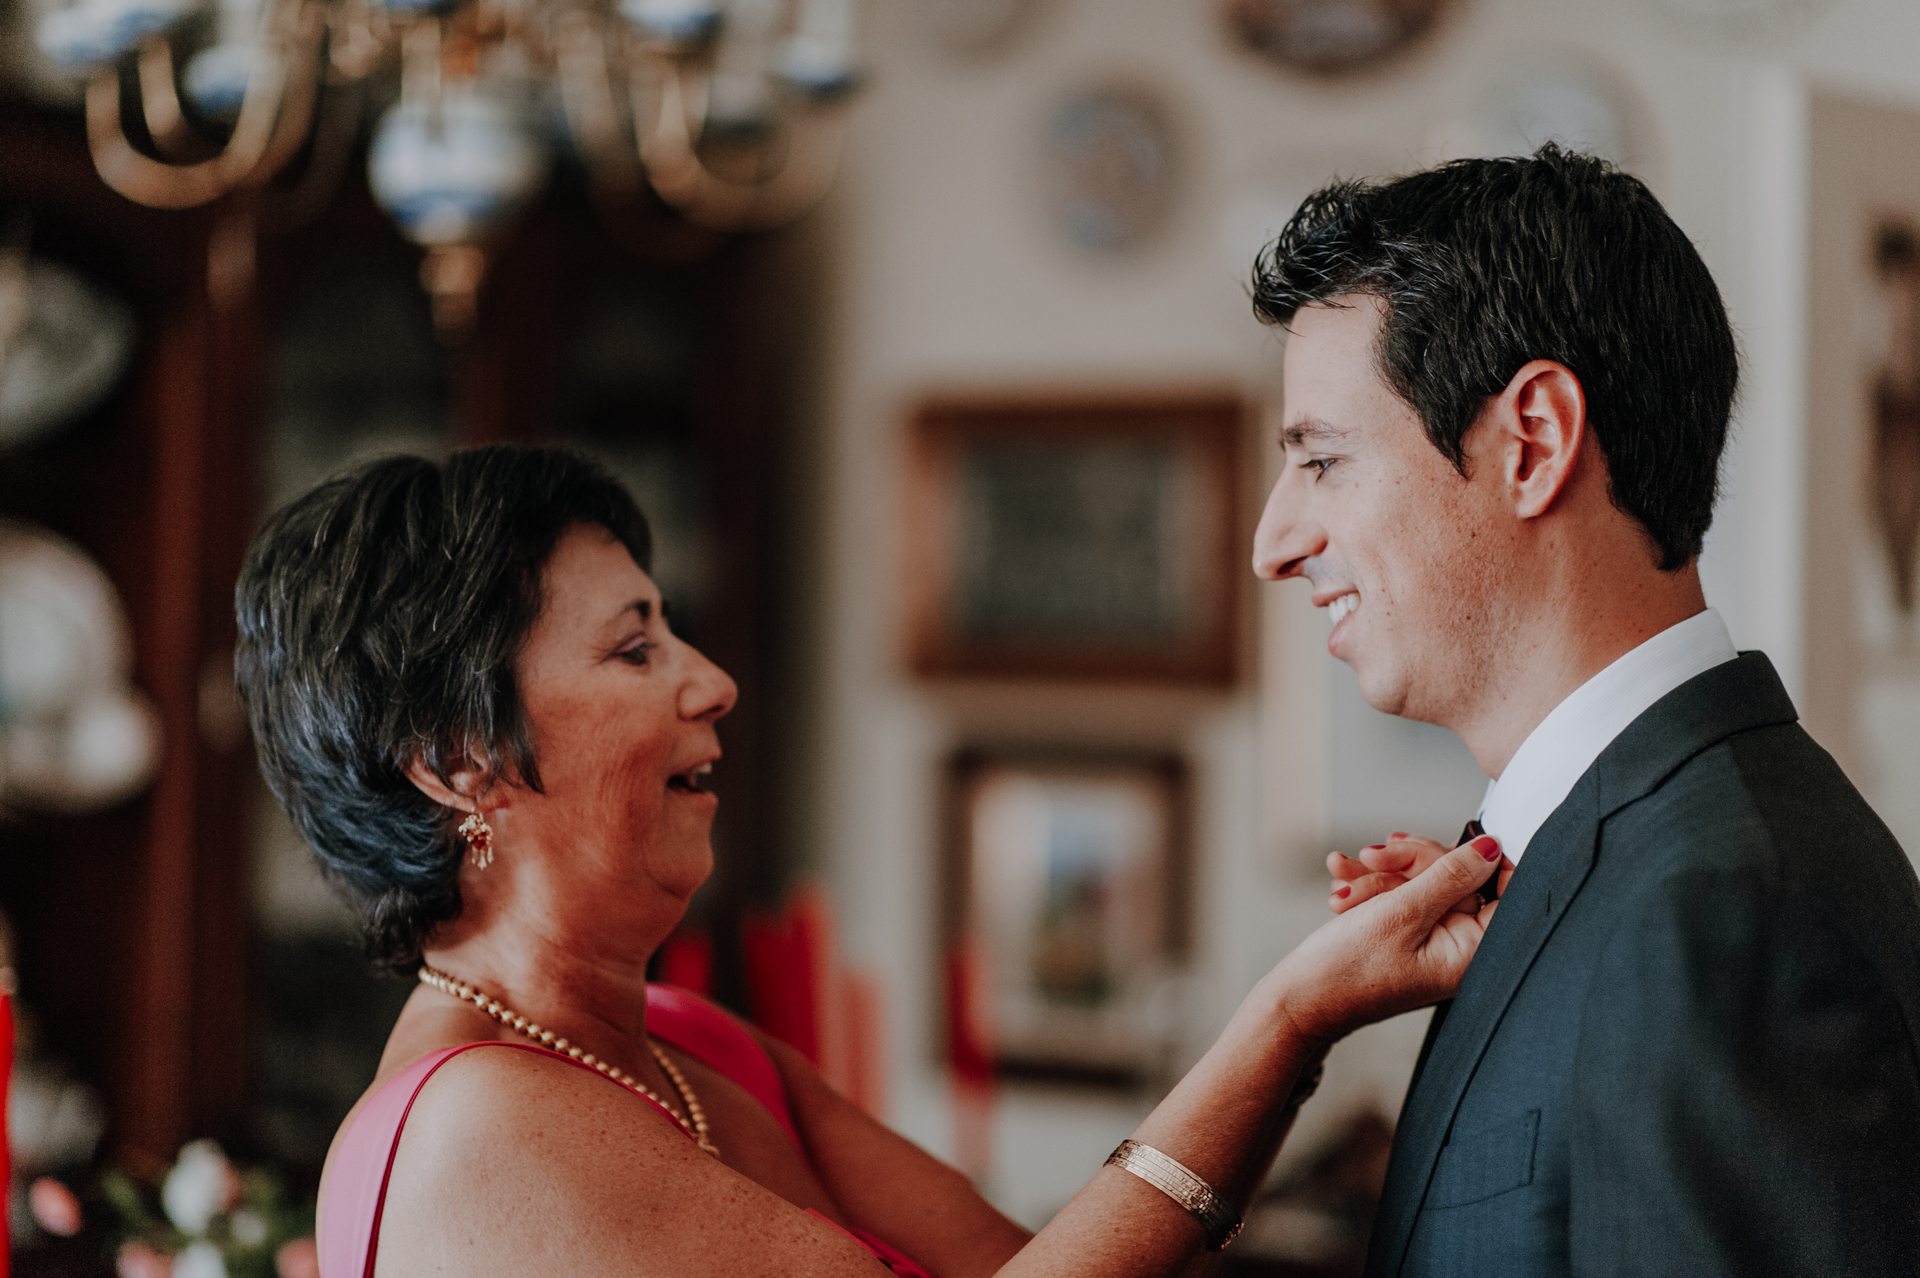 Lisbon Wedding Event Picture | The groom's mother adjusts his tie